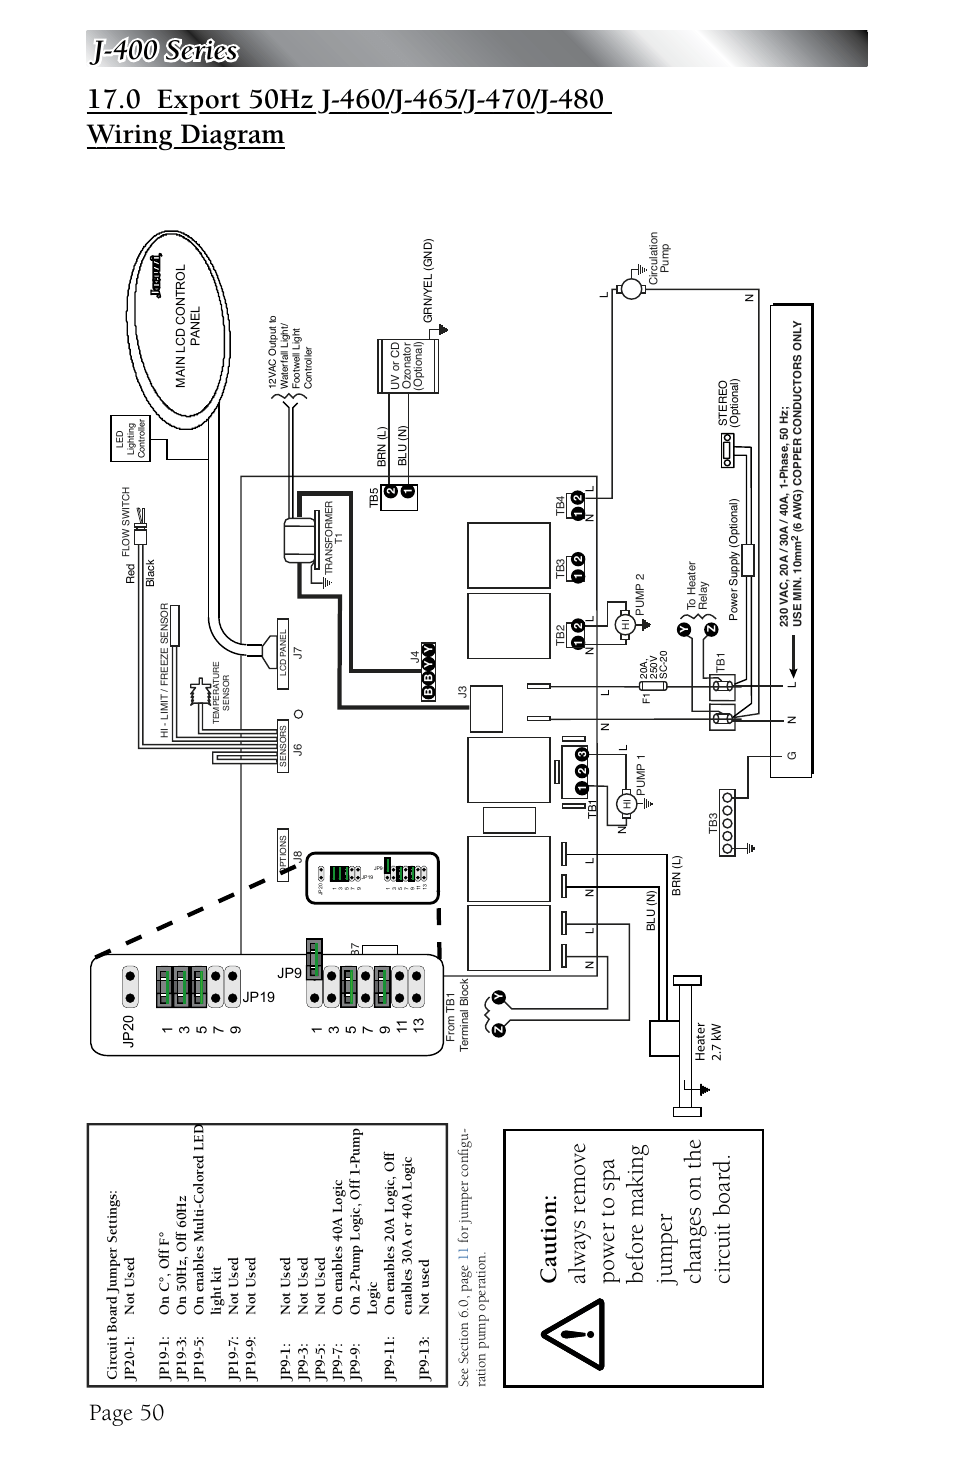 Export 50hz j-460/j-465/j-470/j-480 wiring diagram, Page